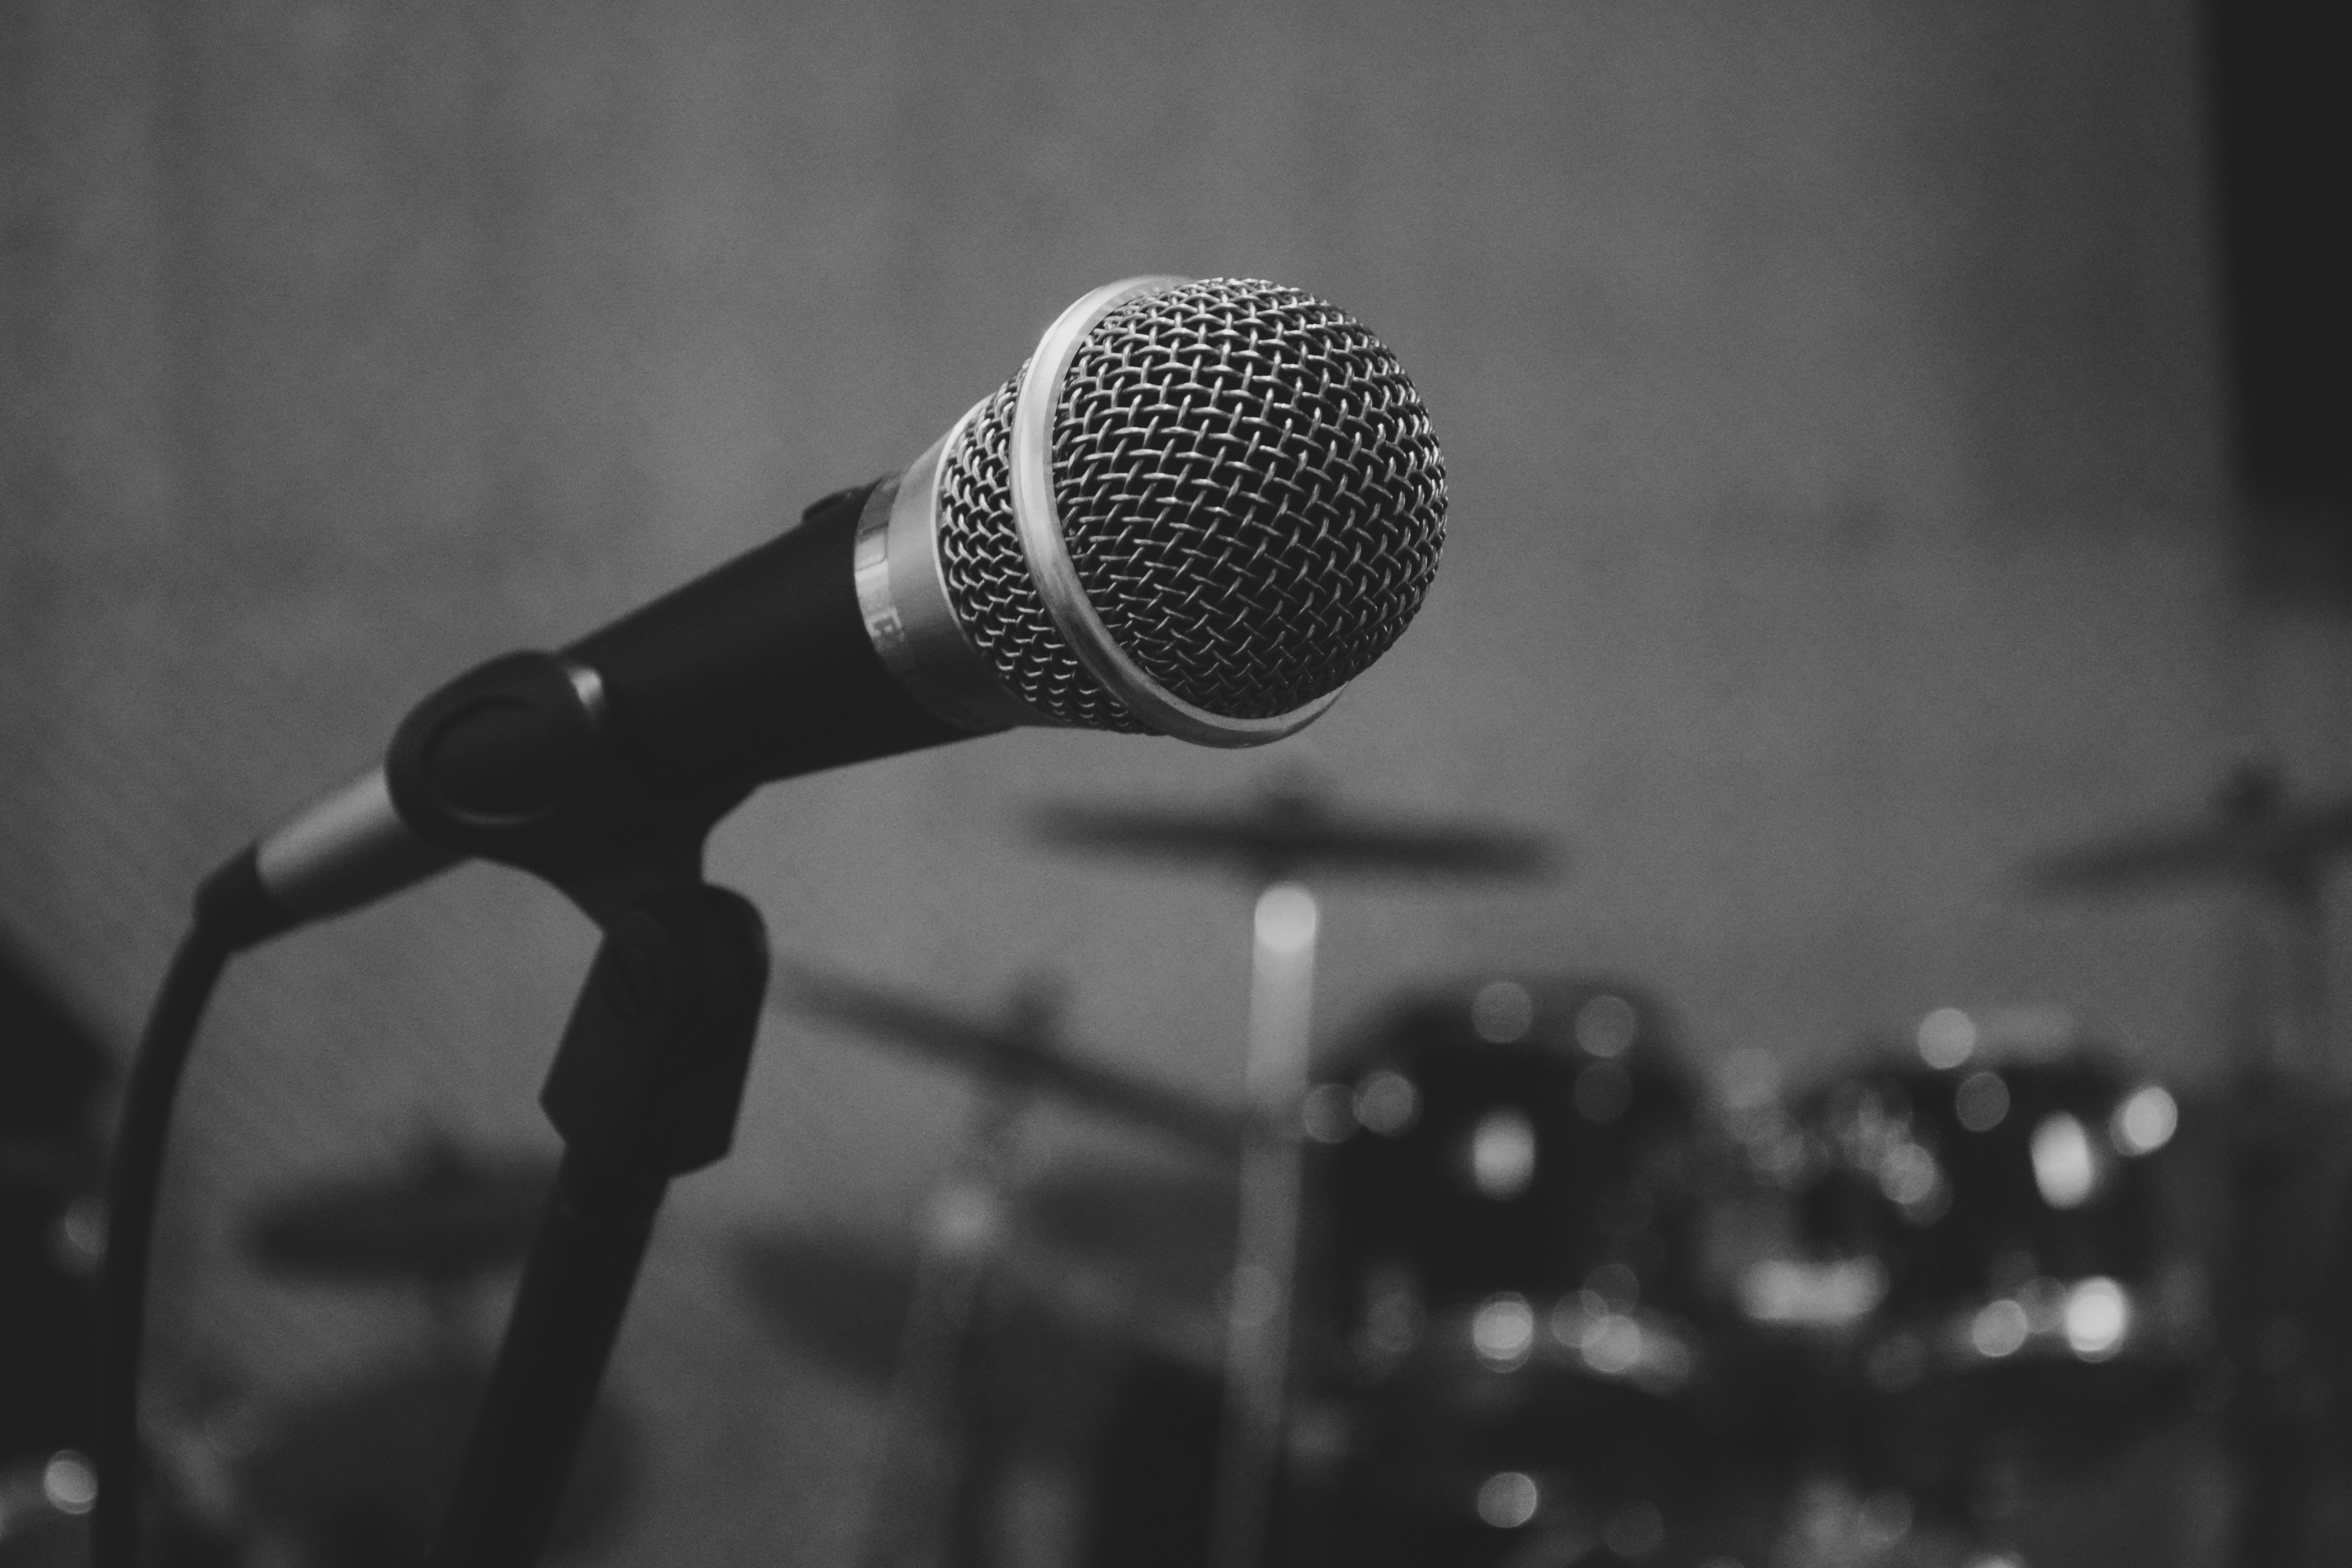 black and grey microphone on stand from Unsplash.com